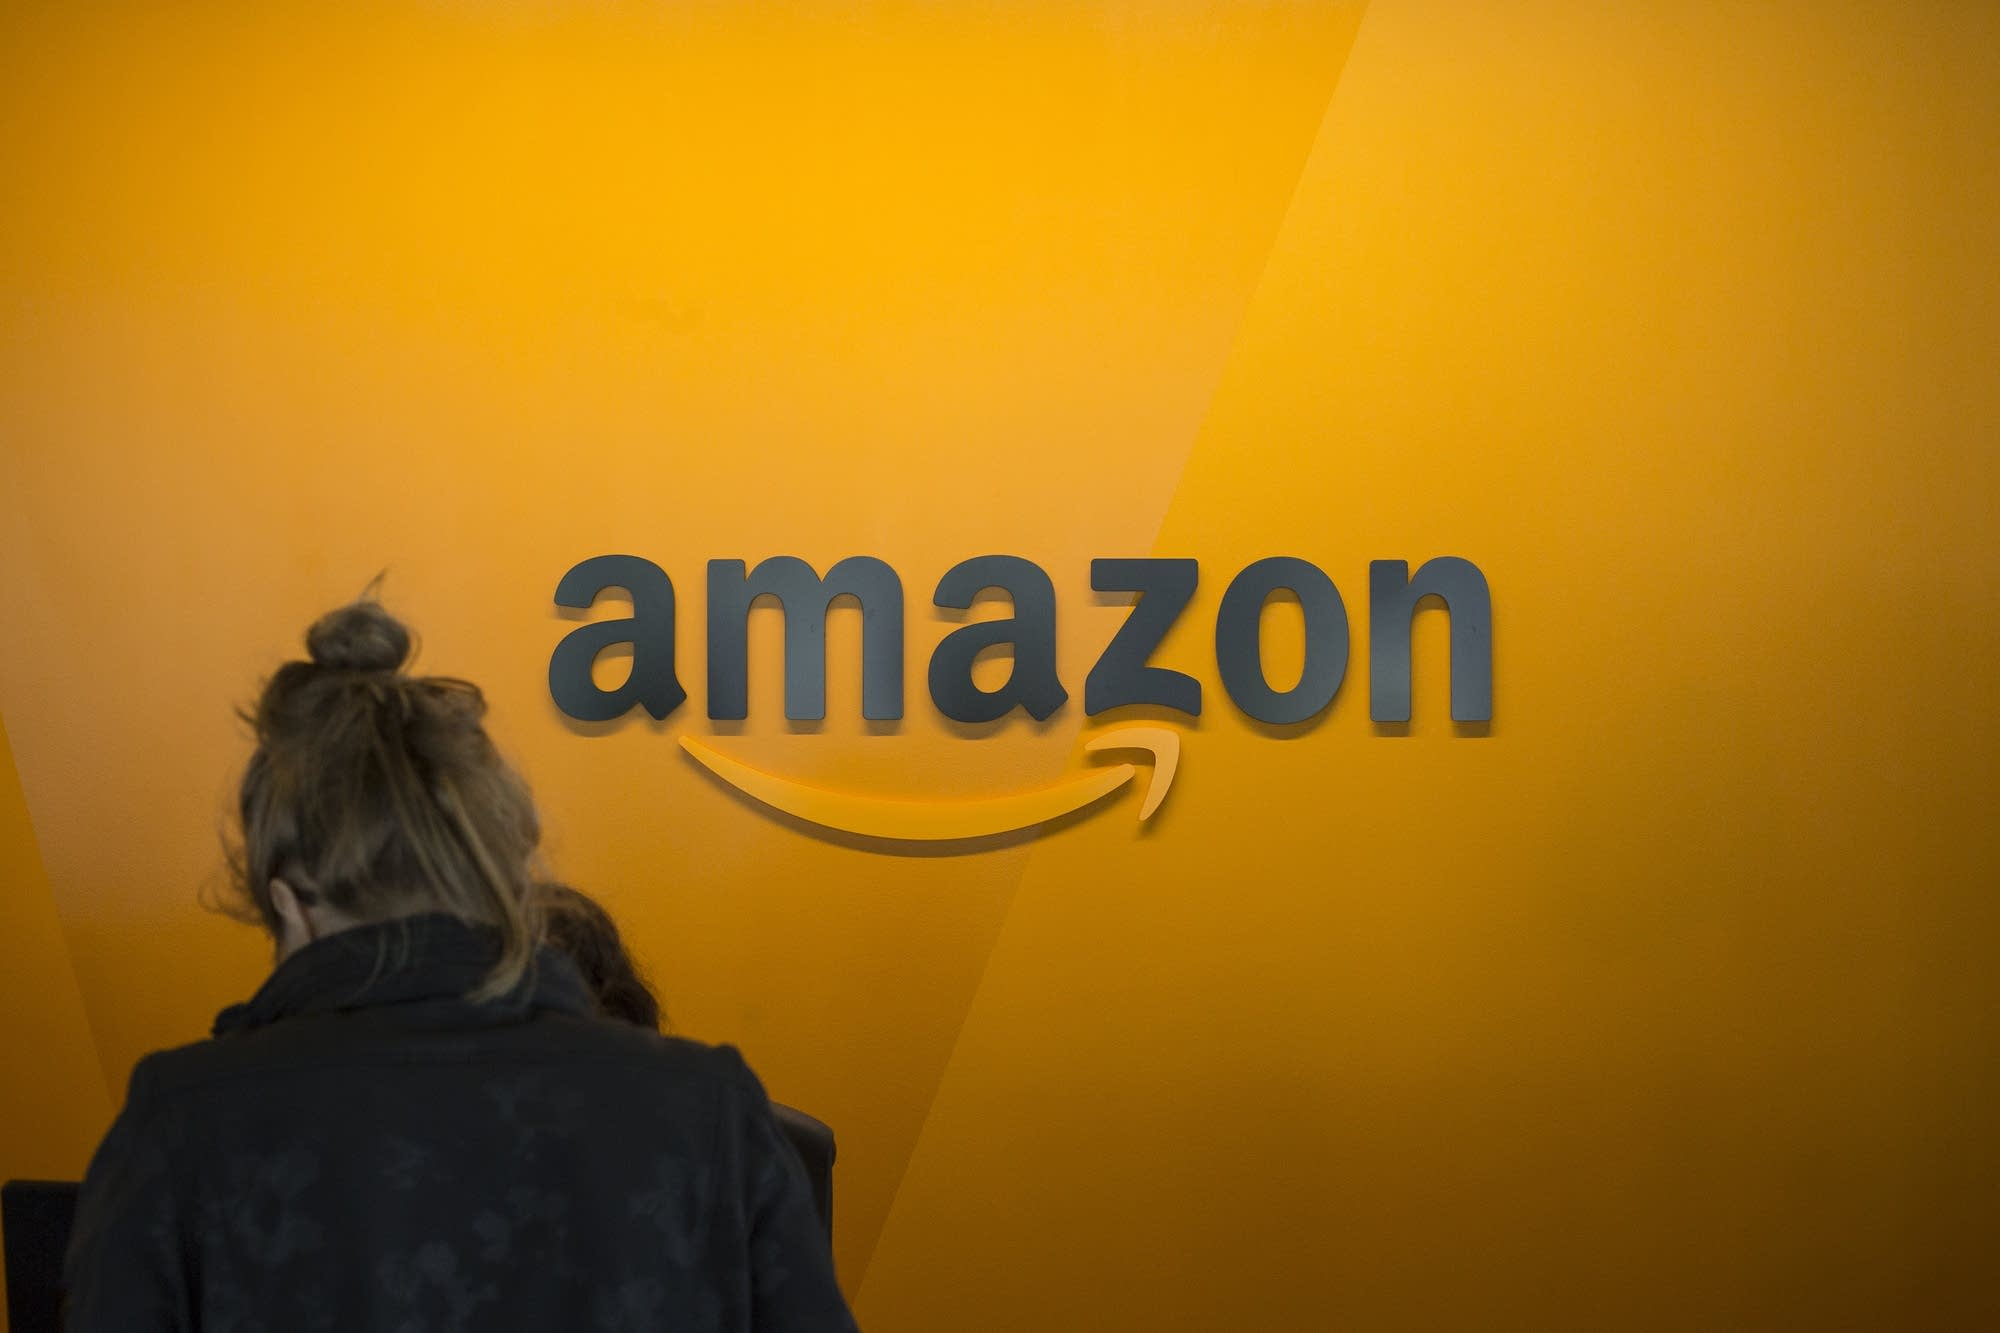 Amazon announces major expansion in Boston